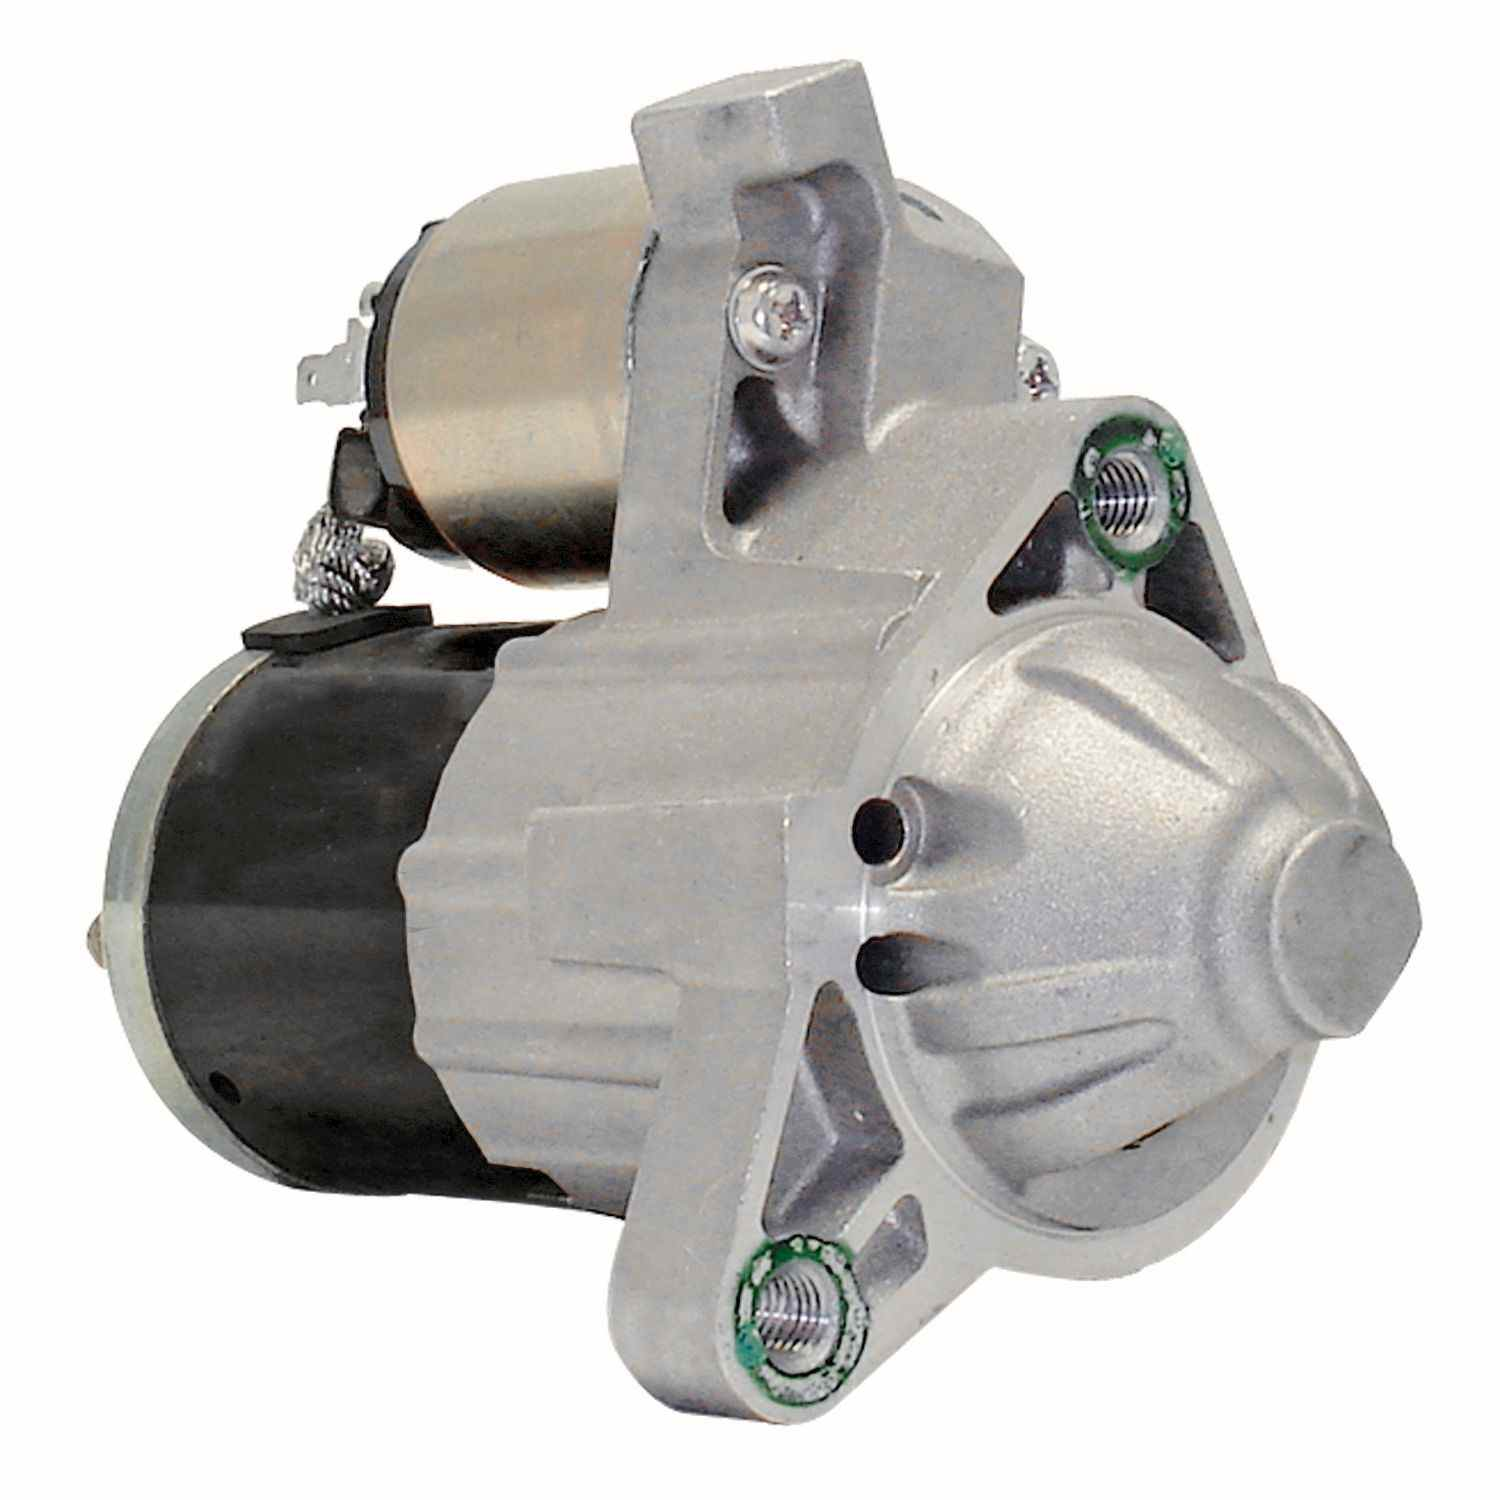 ACDELCO GOLD/PROFESSIONAL - Reman Starter Motor - DCC 336-1223